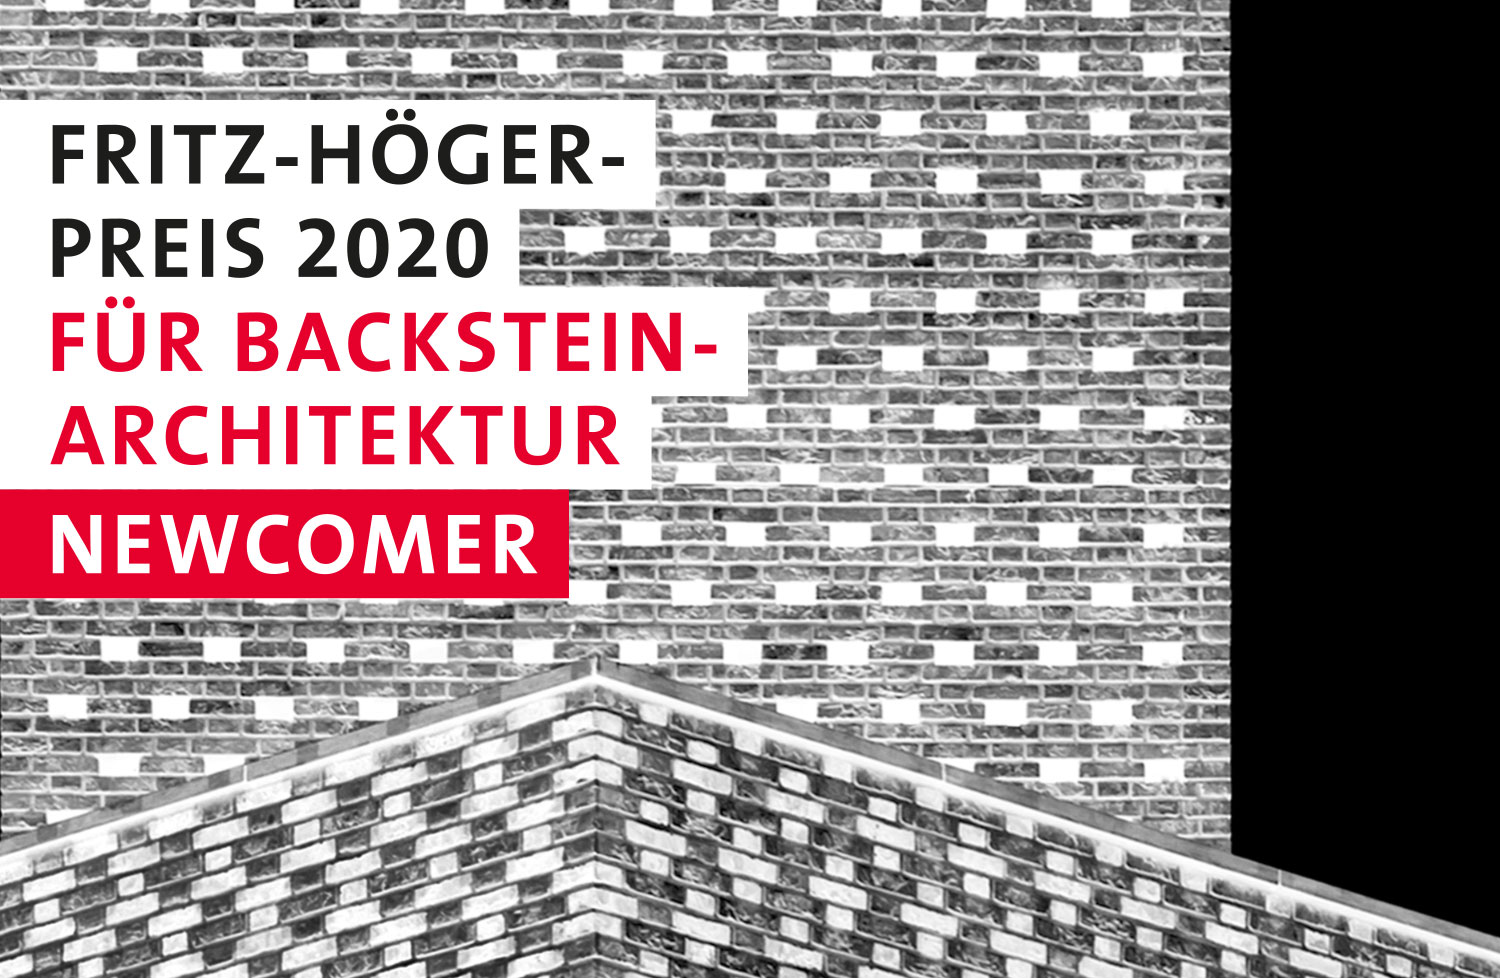 news--Backsteinarchitektur-neu-denken